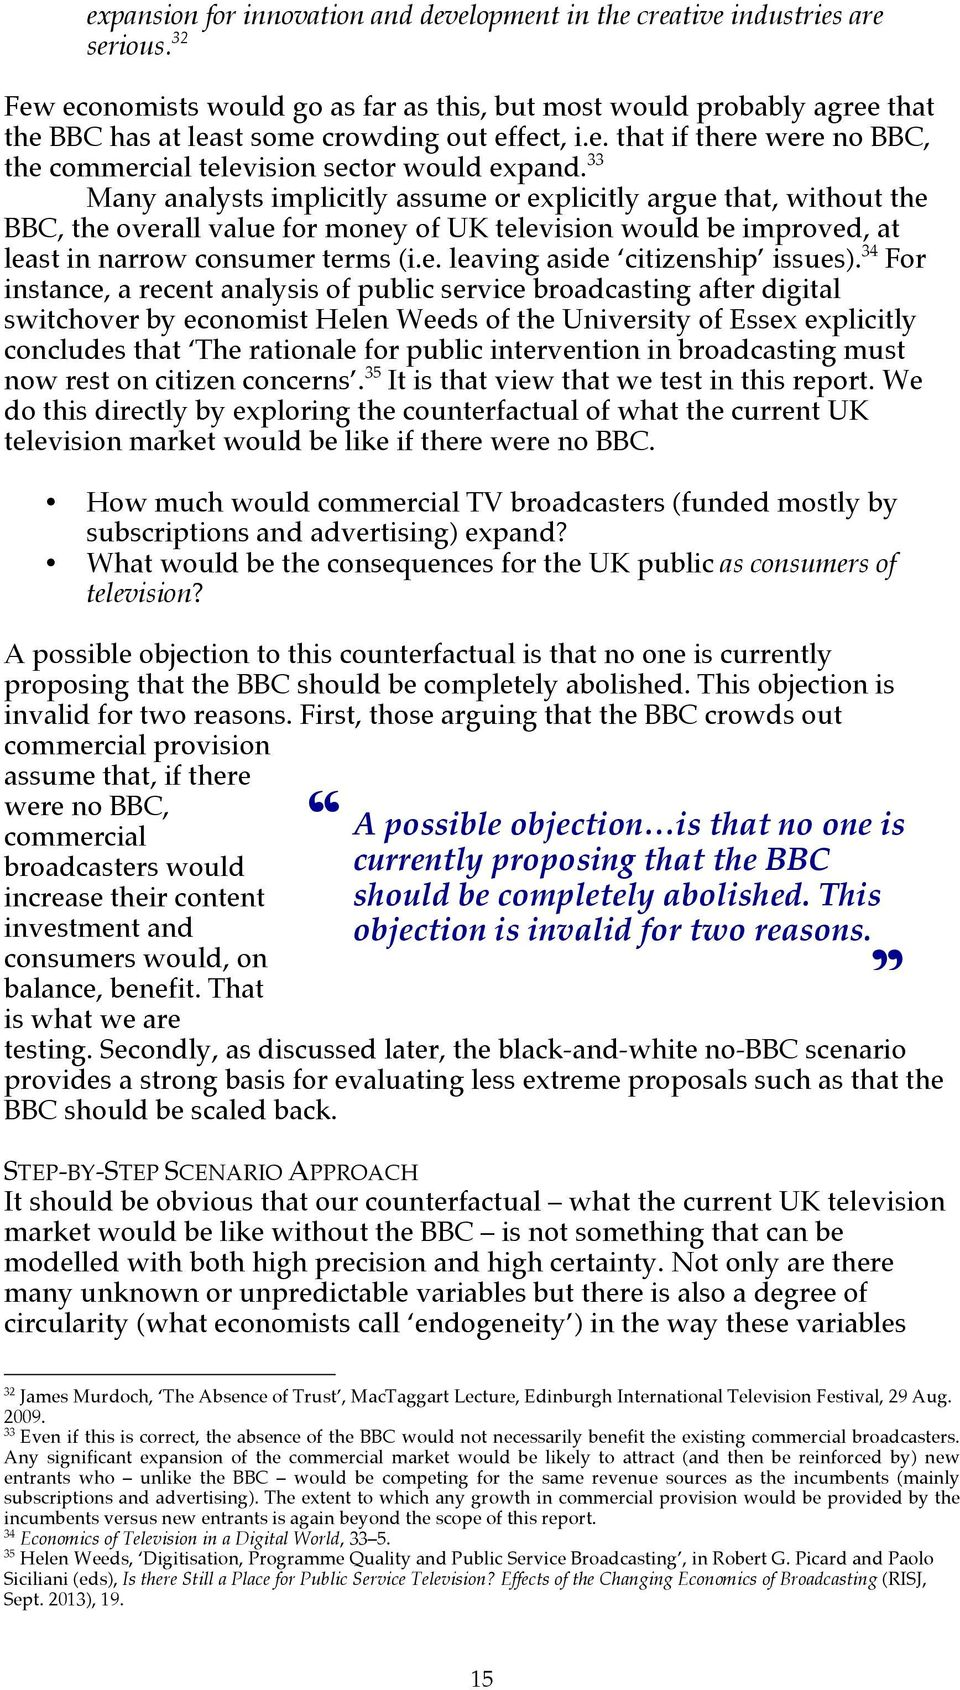 33 Many analysts implicitly assume or explicitly argue that, without the BBC, the overall value for money of UK television would be improved, at least in narrow consumer terms (i.e. leaving aside citizenship issues).